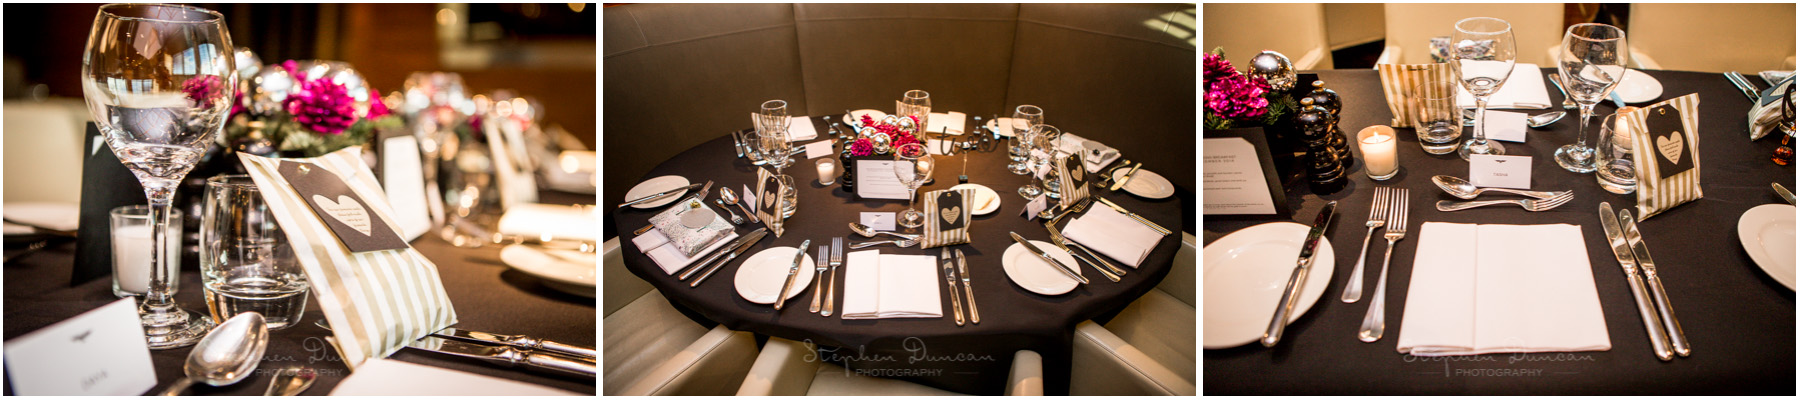 The Aviator wedding photography table settings in restaurant